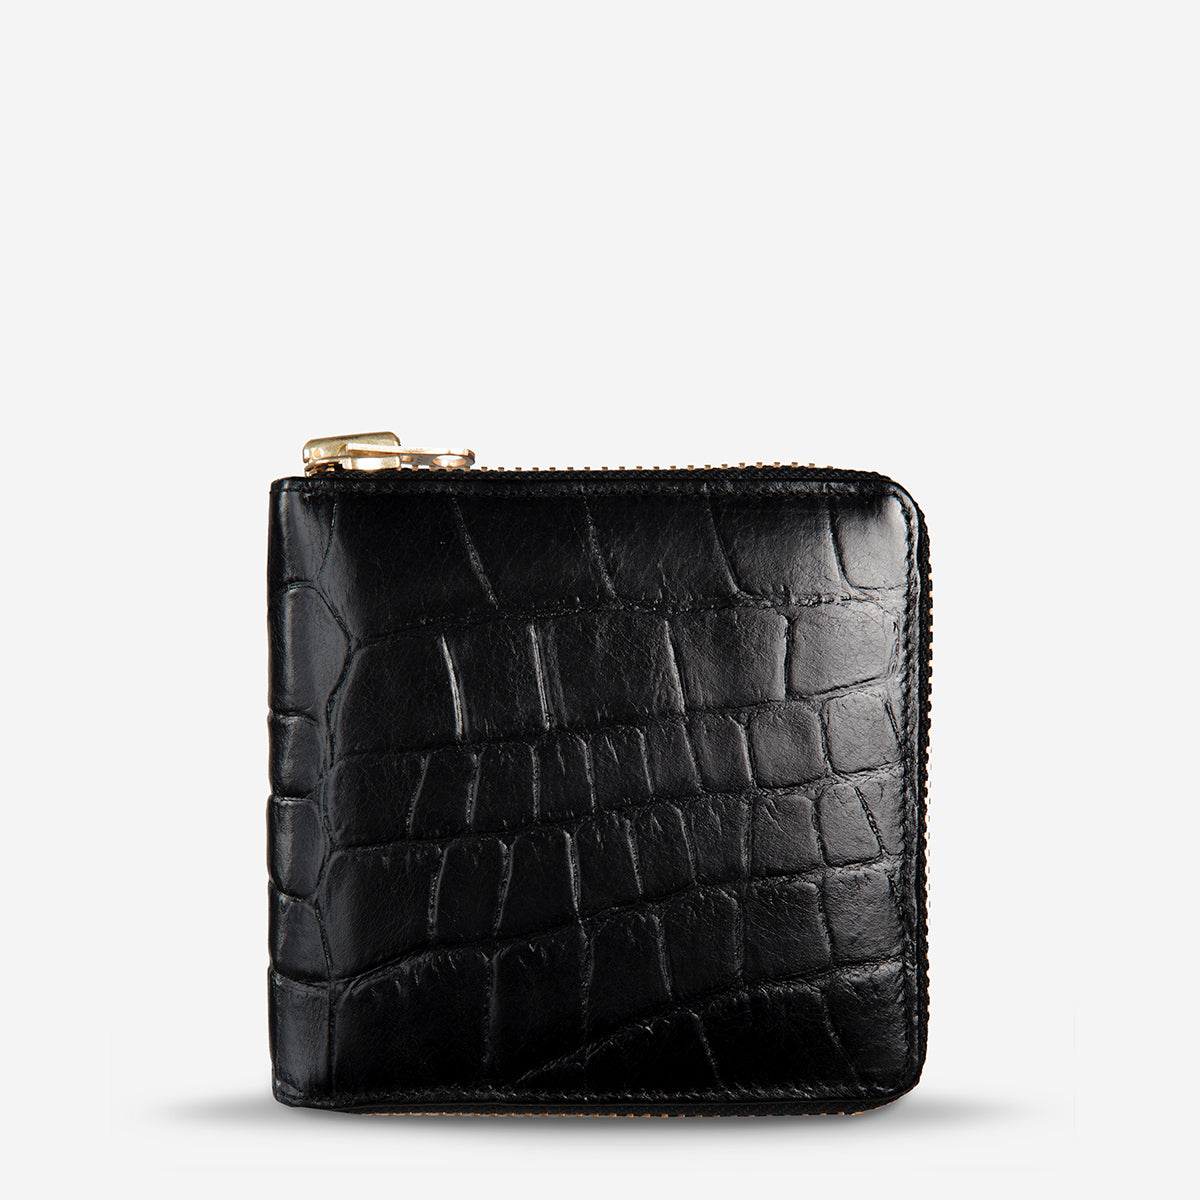 c690523ae307 Empire - Black Croc  Status Anxiety Empire Women s Leather Wallet - Black  ...